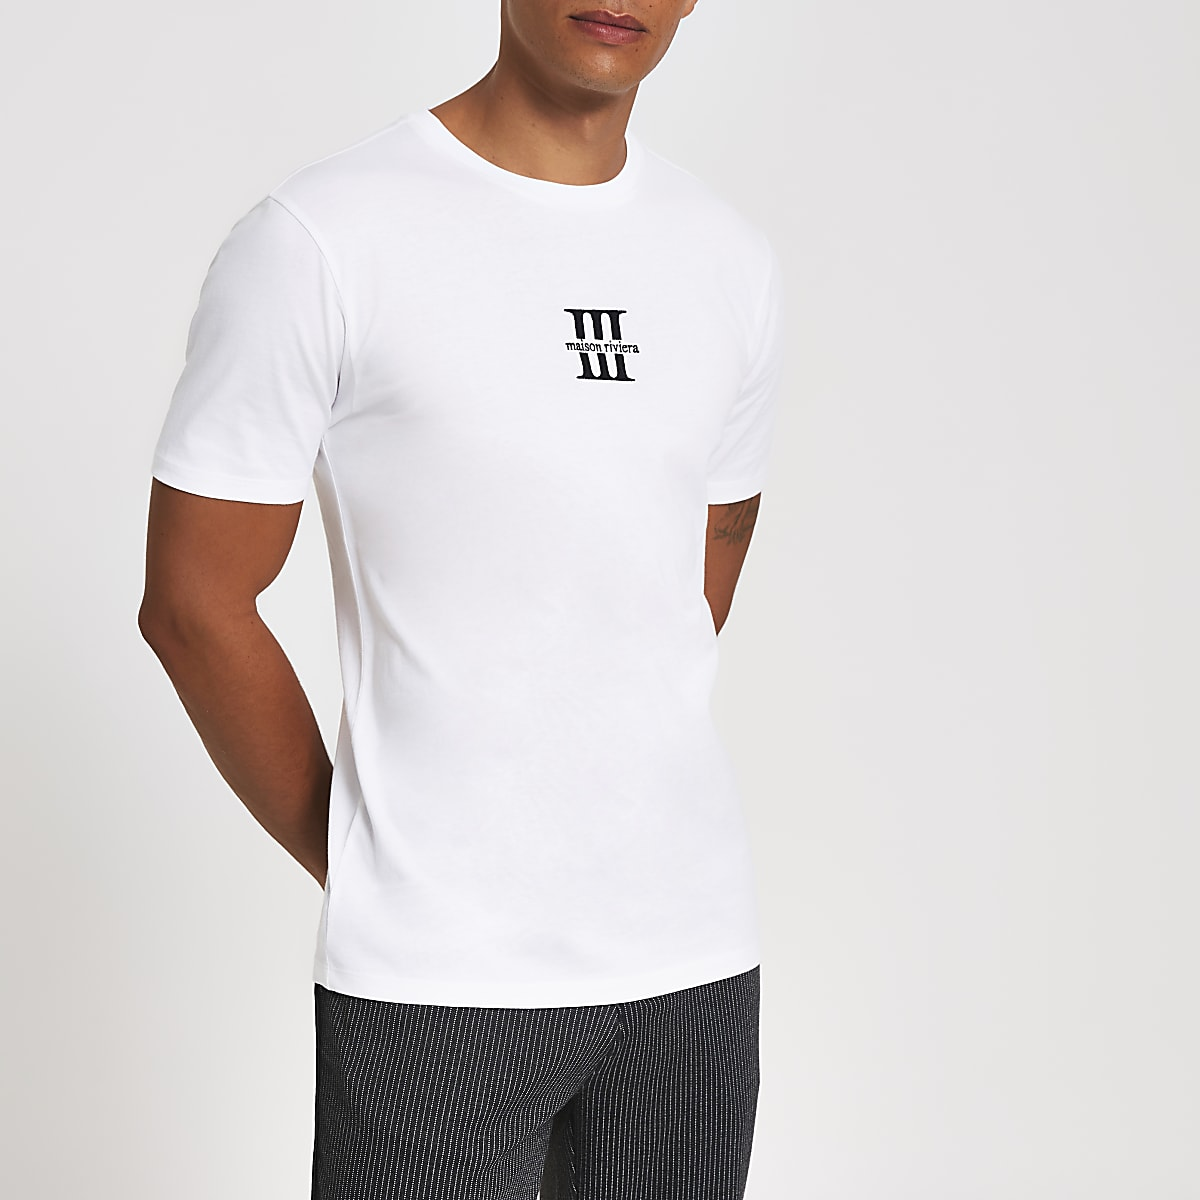 White Maison Riviera slim fit T-shirt